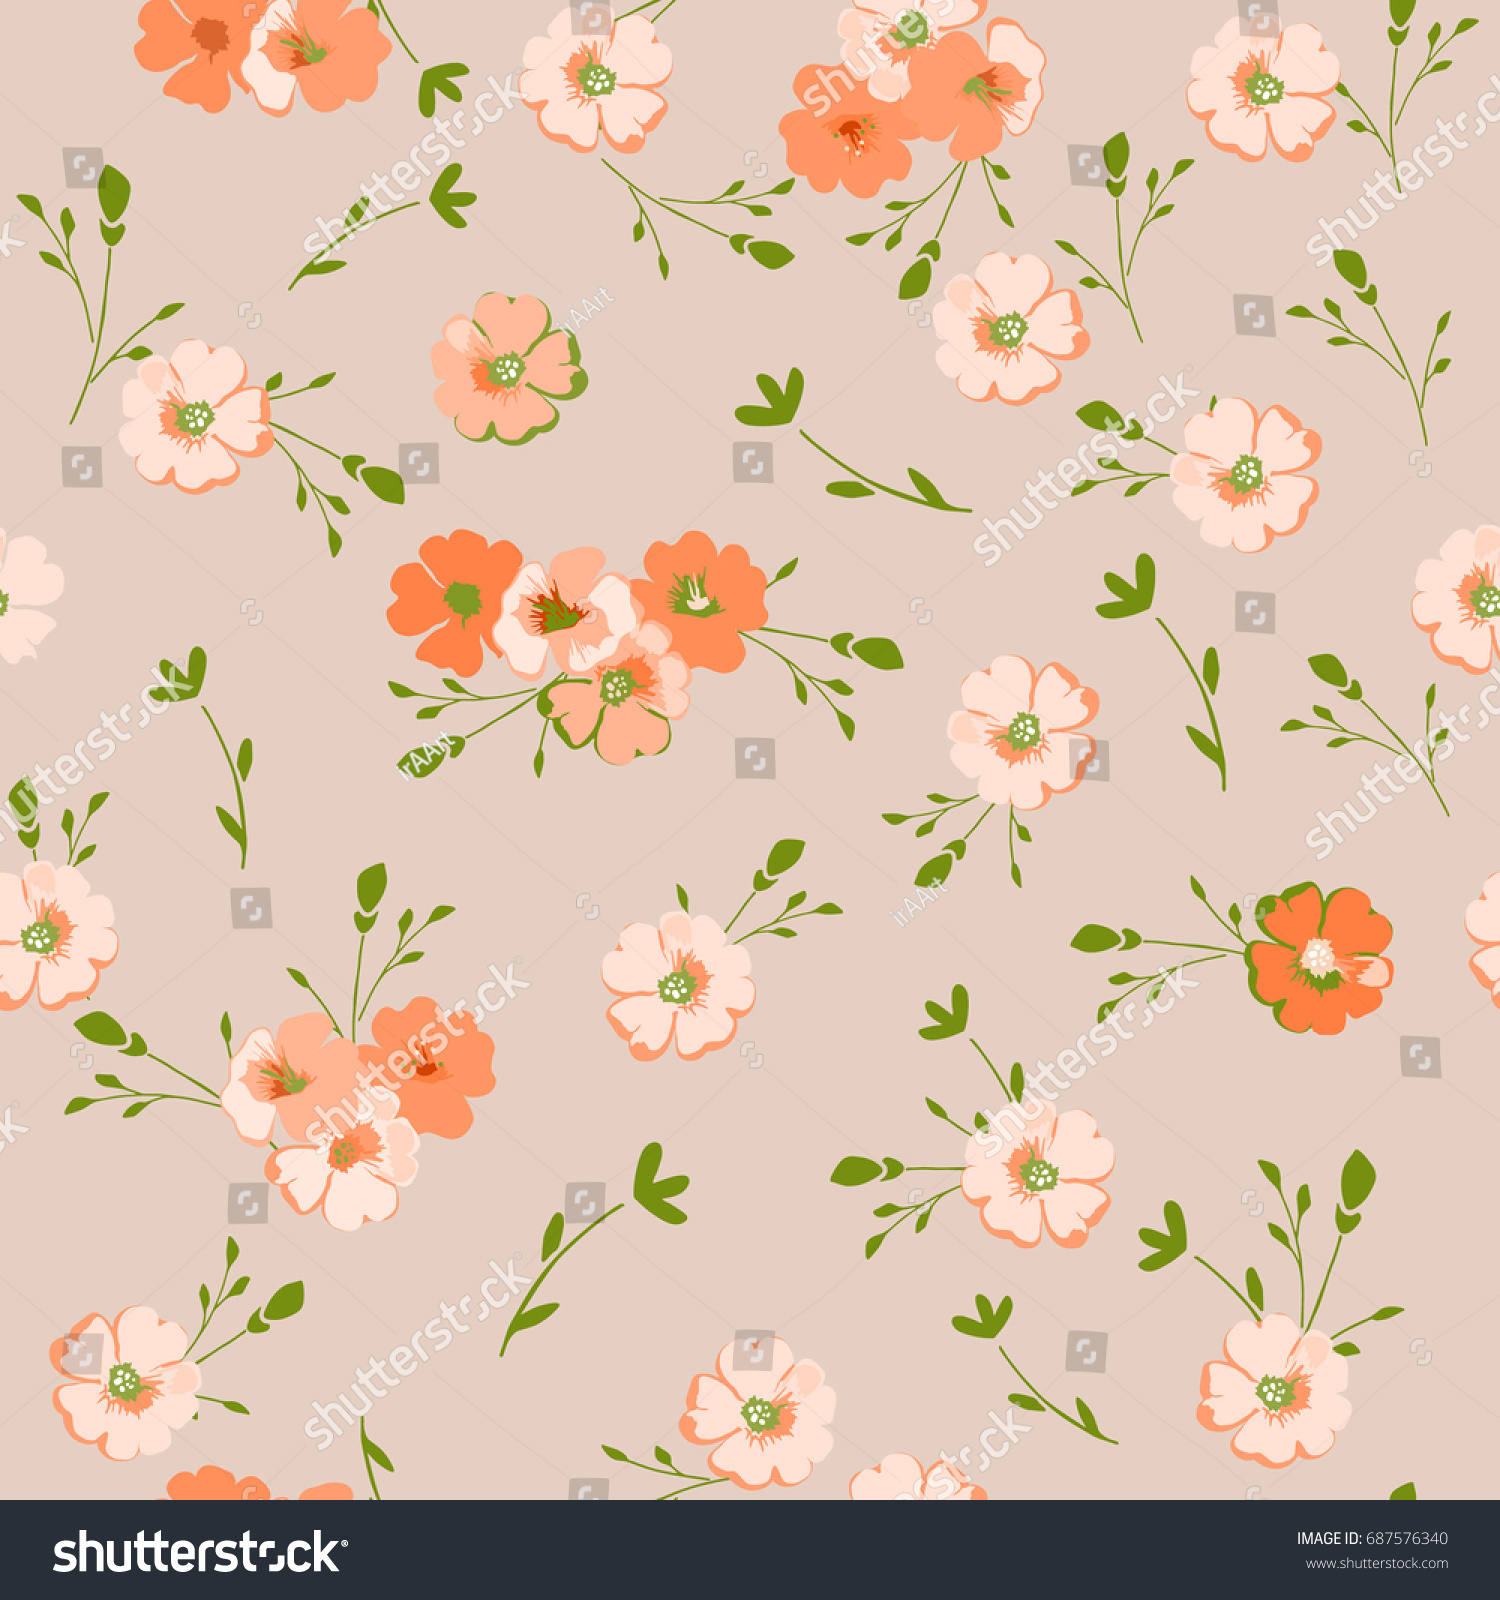 Vintage Floral Pattern Cute Flowers For Design Fabric Paper Wallpaper